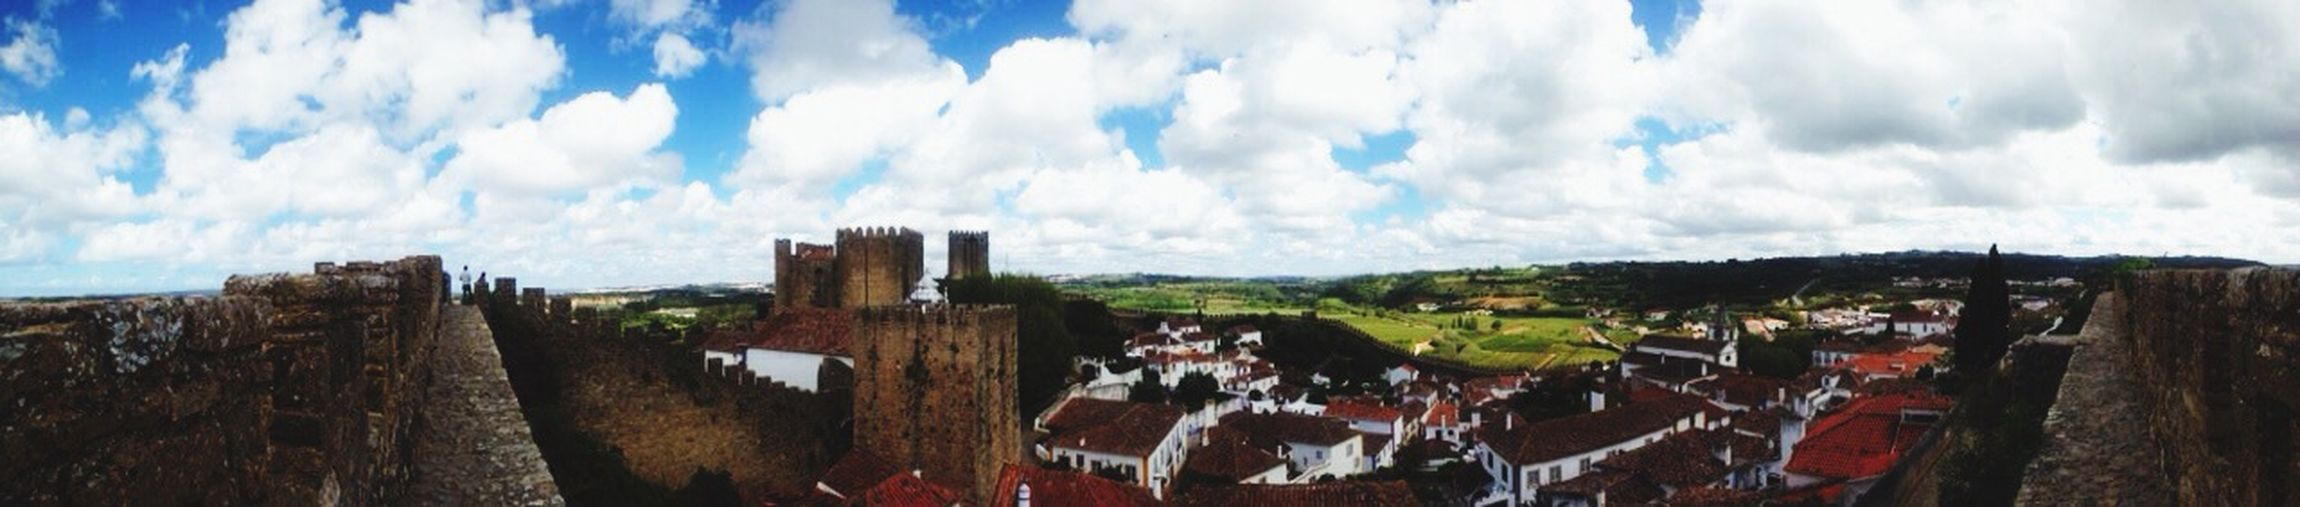 RePicture Travel Portugal Óbidos  Check This Out